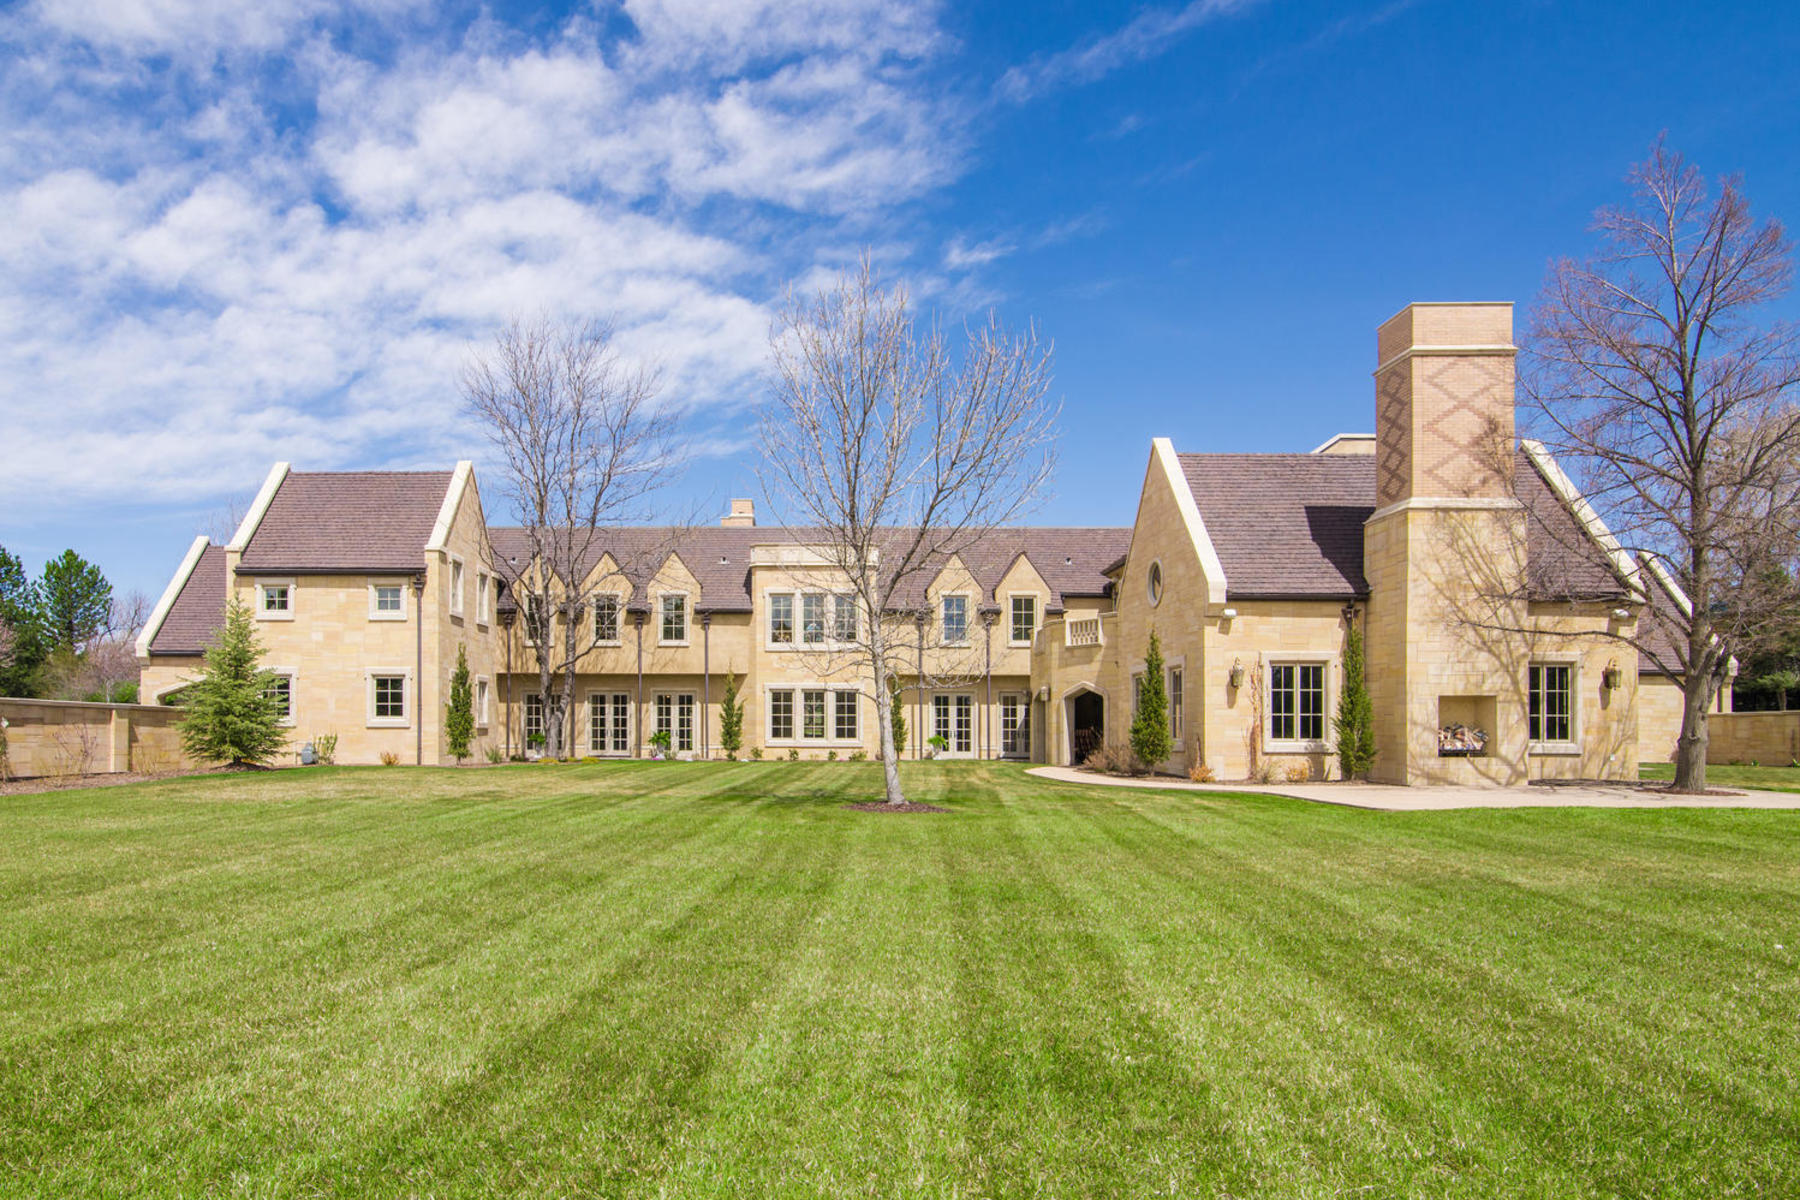 Single Family Home for Active at This English manor home is nestled on 2.5 serene acres in Cherry Hills Village! 1 Tenaya Ln Cherry Hills Village, Colorado 80113 United States